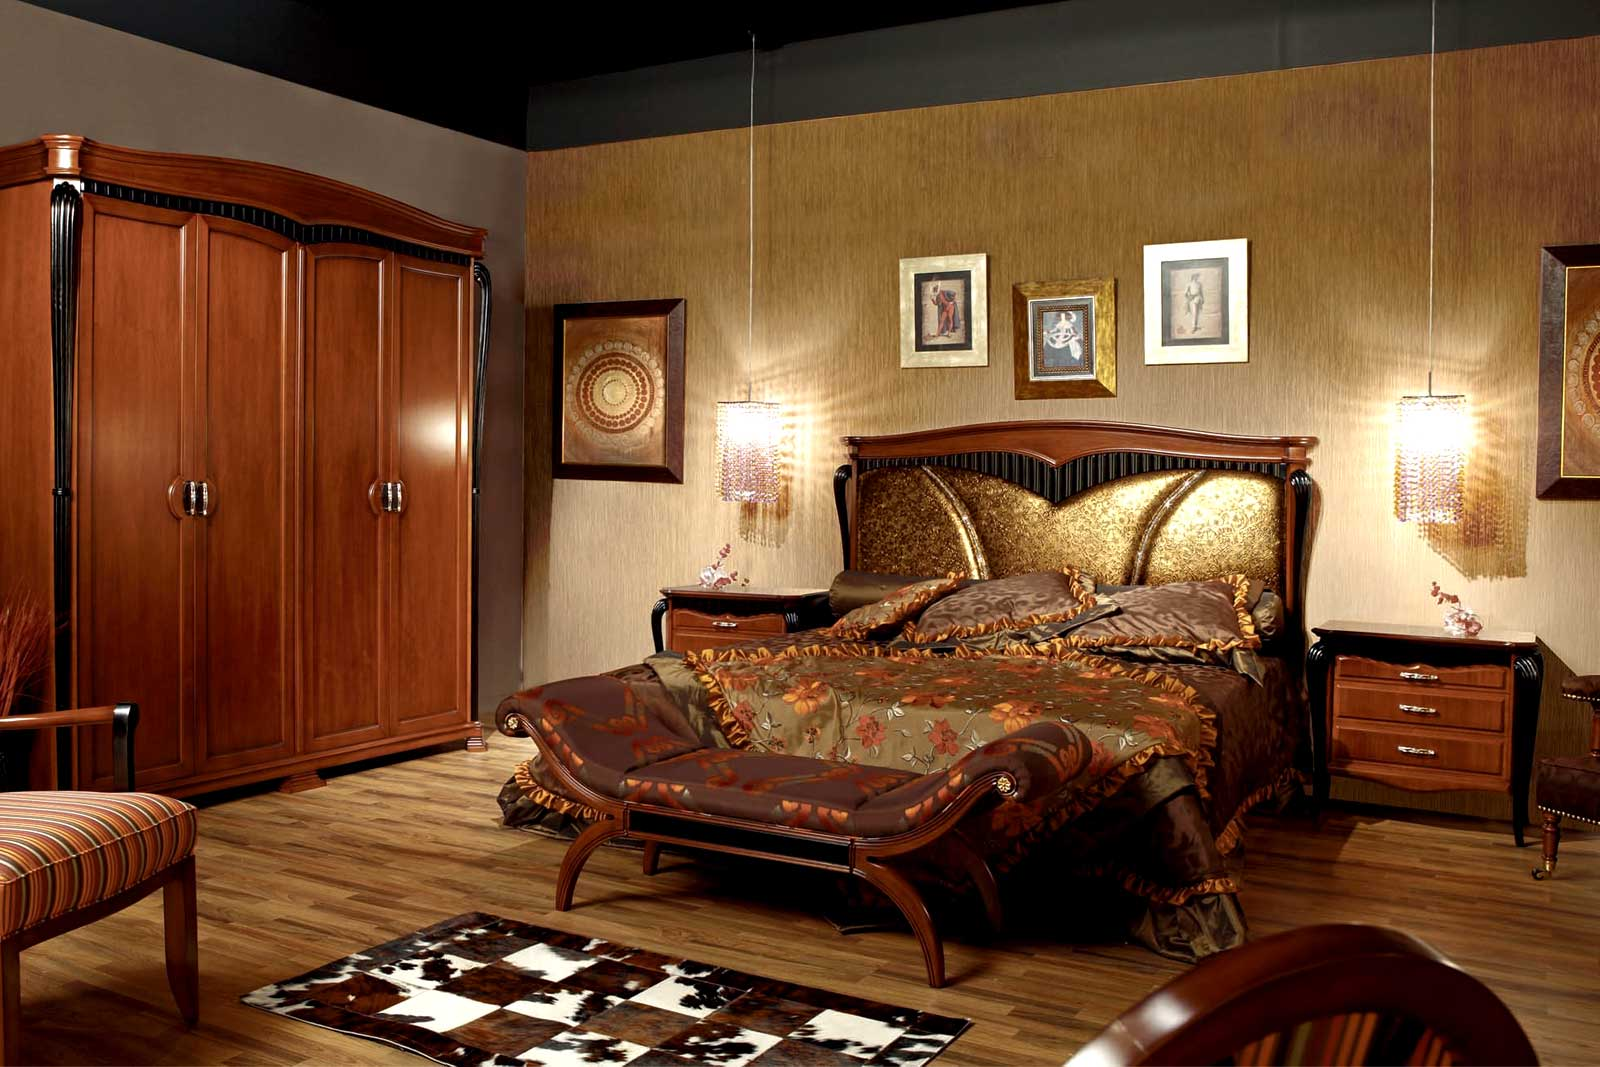 Luxury GLAMOUR BEDROOM luxury bedroom furniture